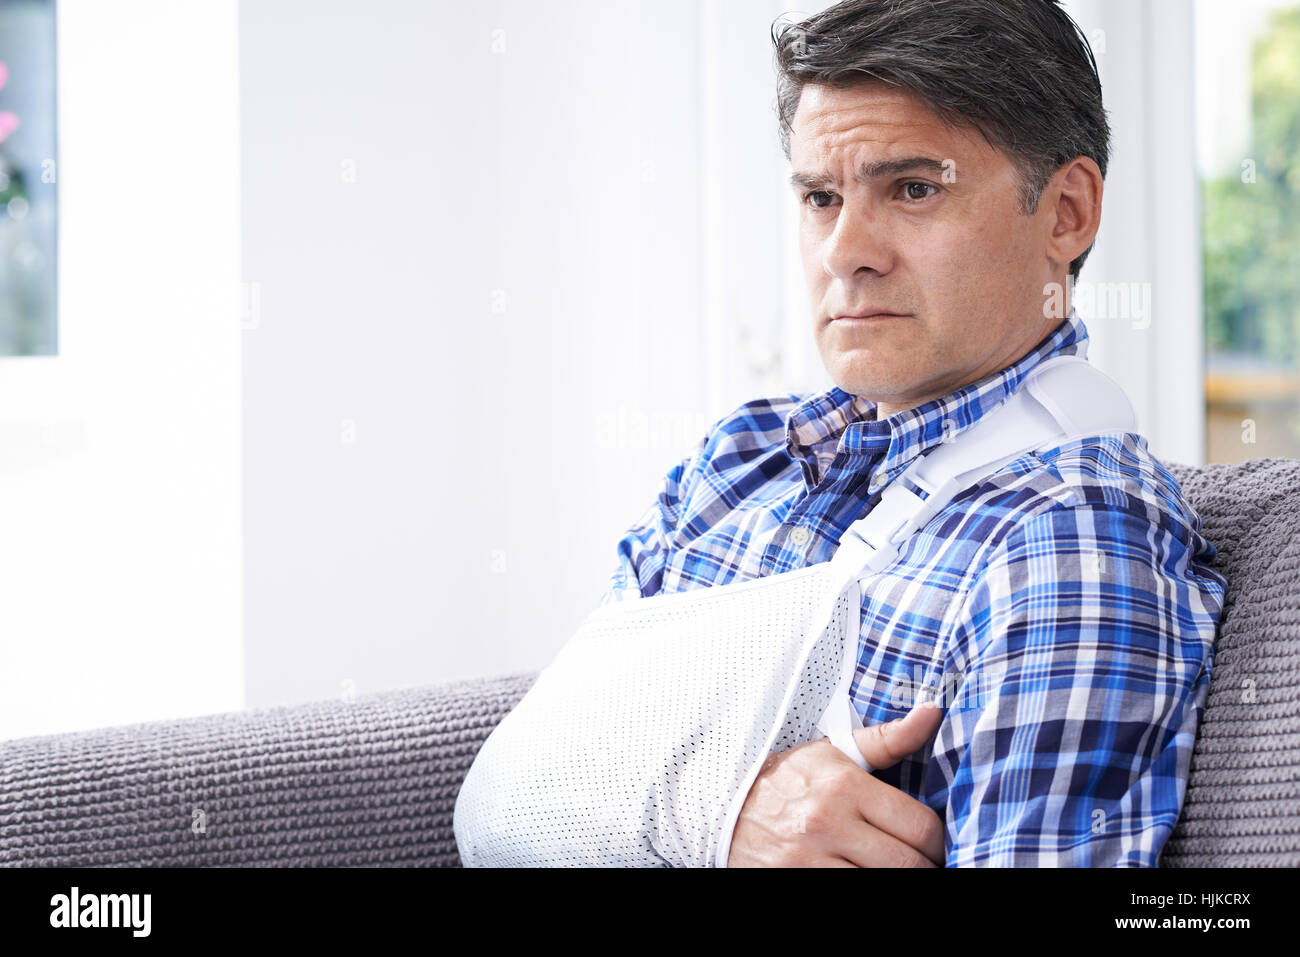 Mature Man With Arm In Sling At Home - Stock Image